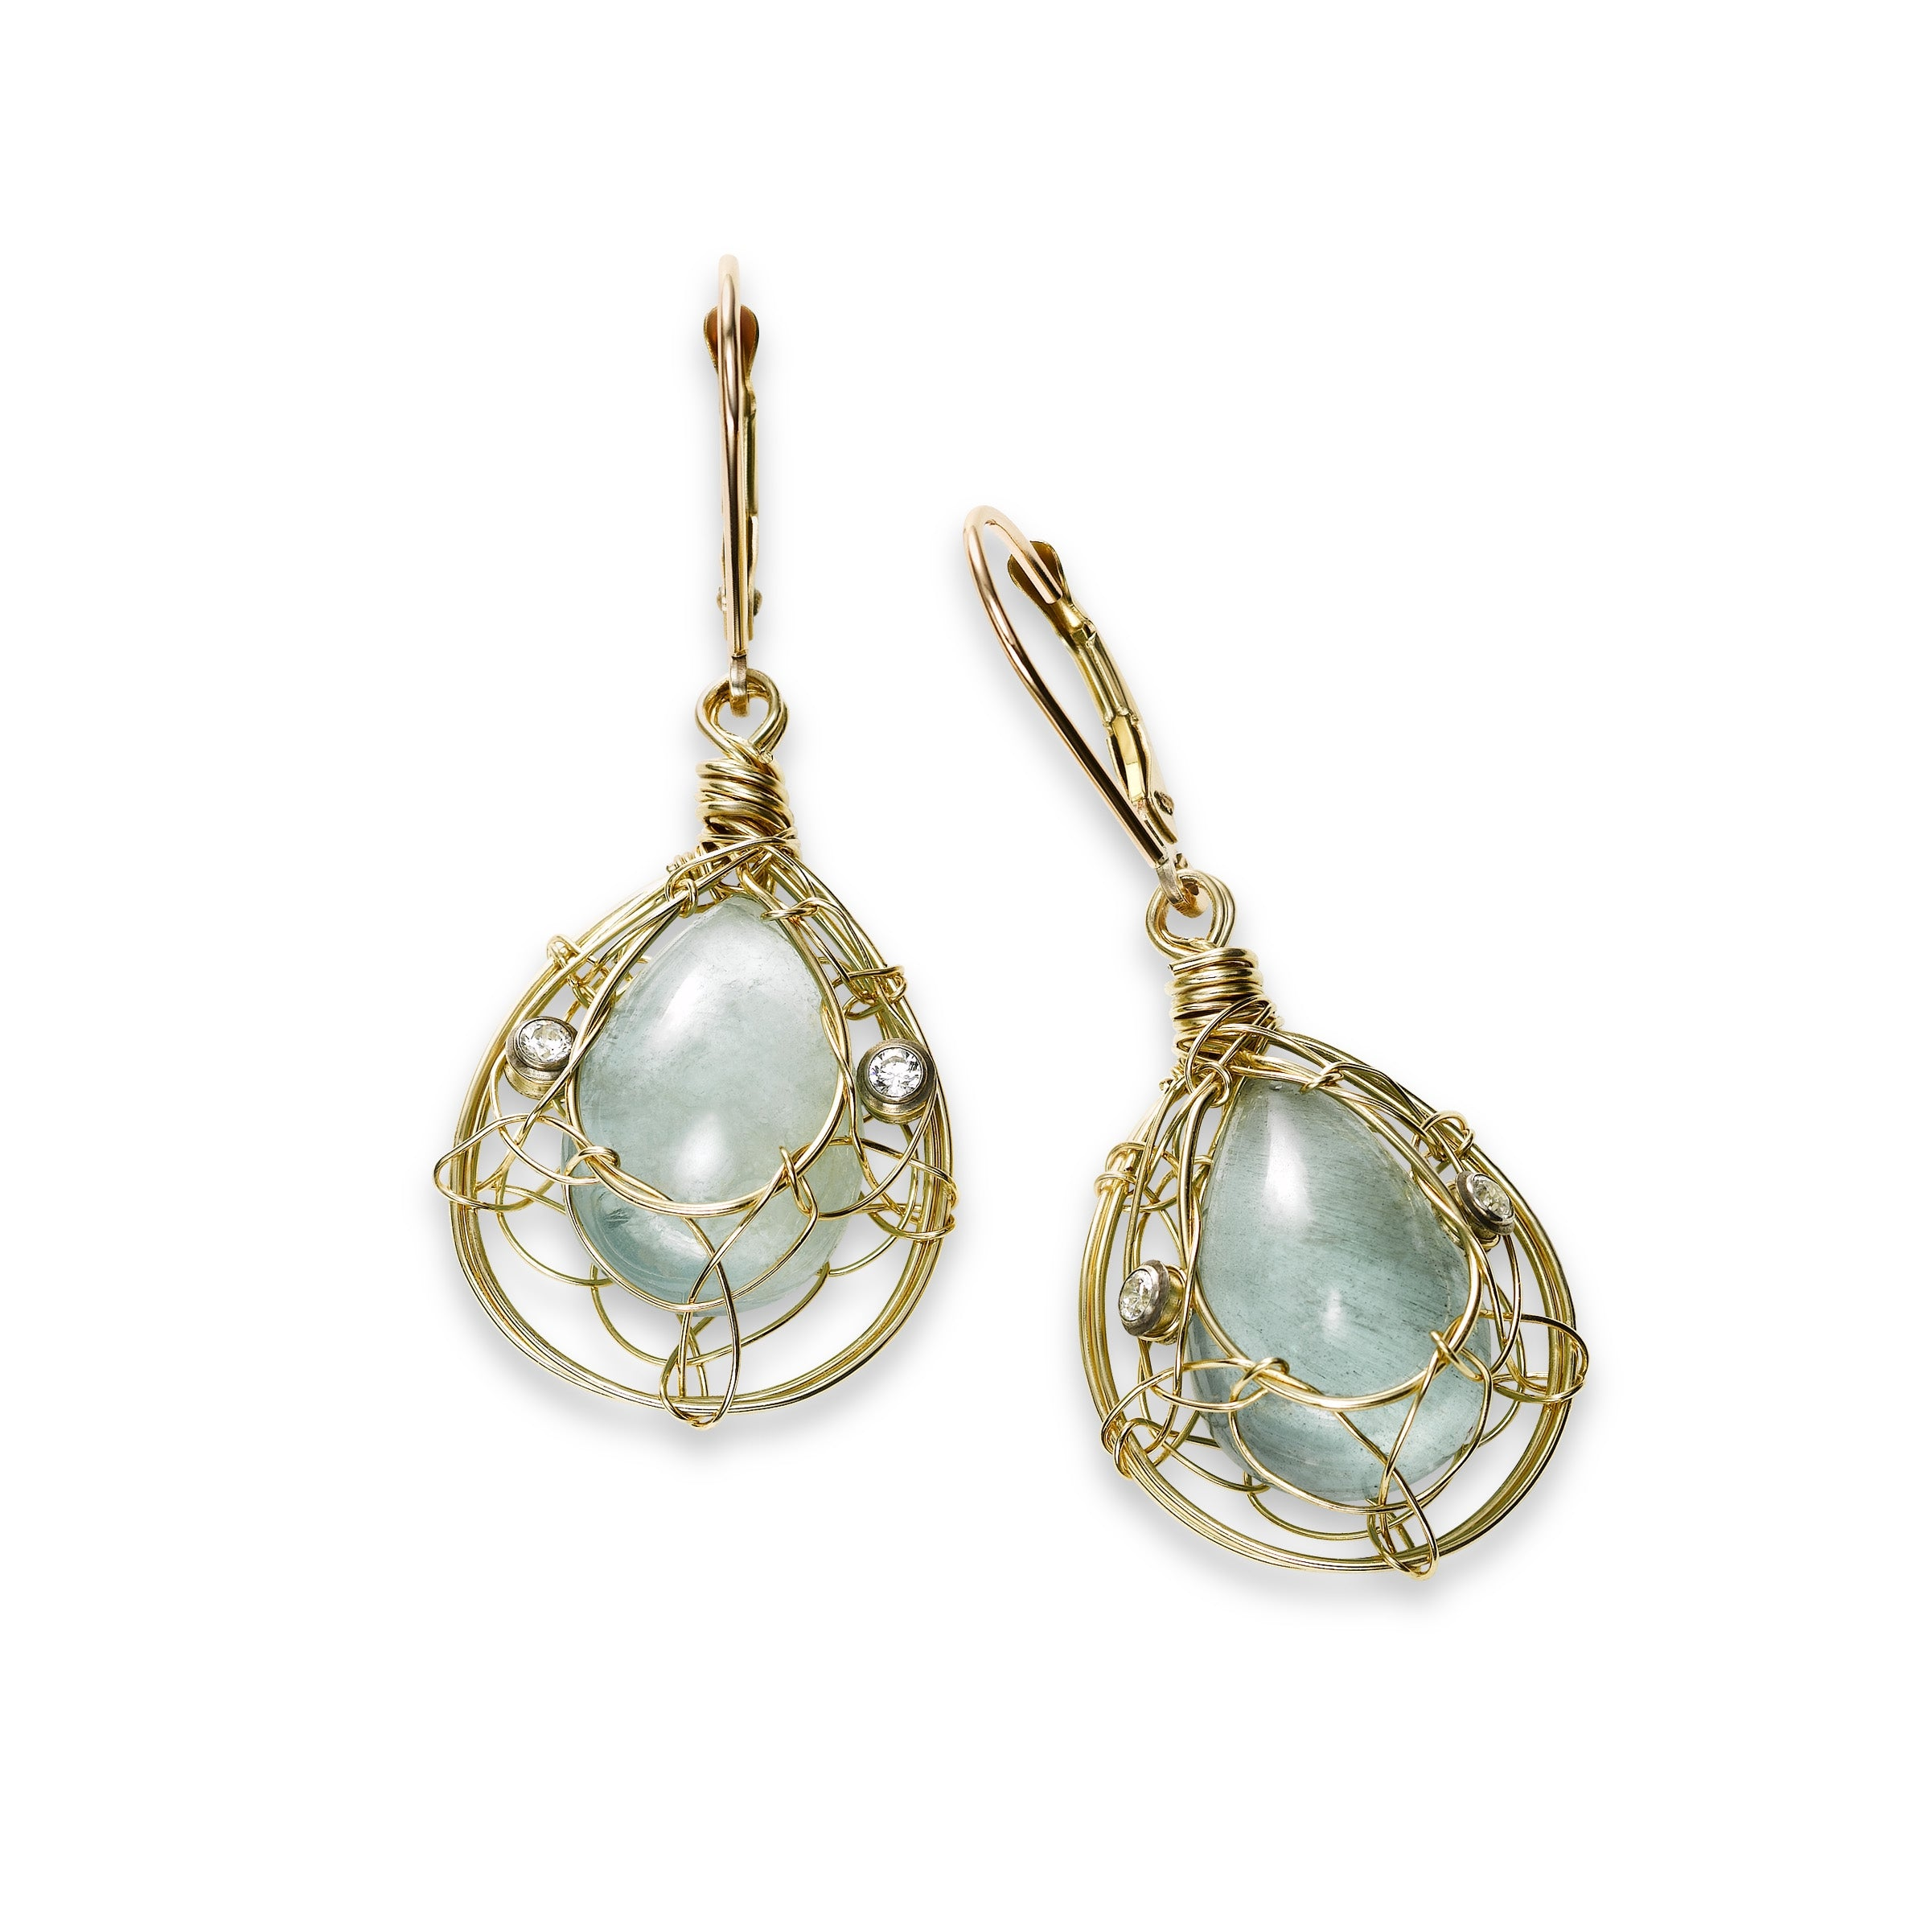 Aquamarine and White Topaz Dangle Earrings, 14K Gold Filled